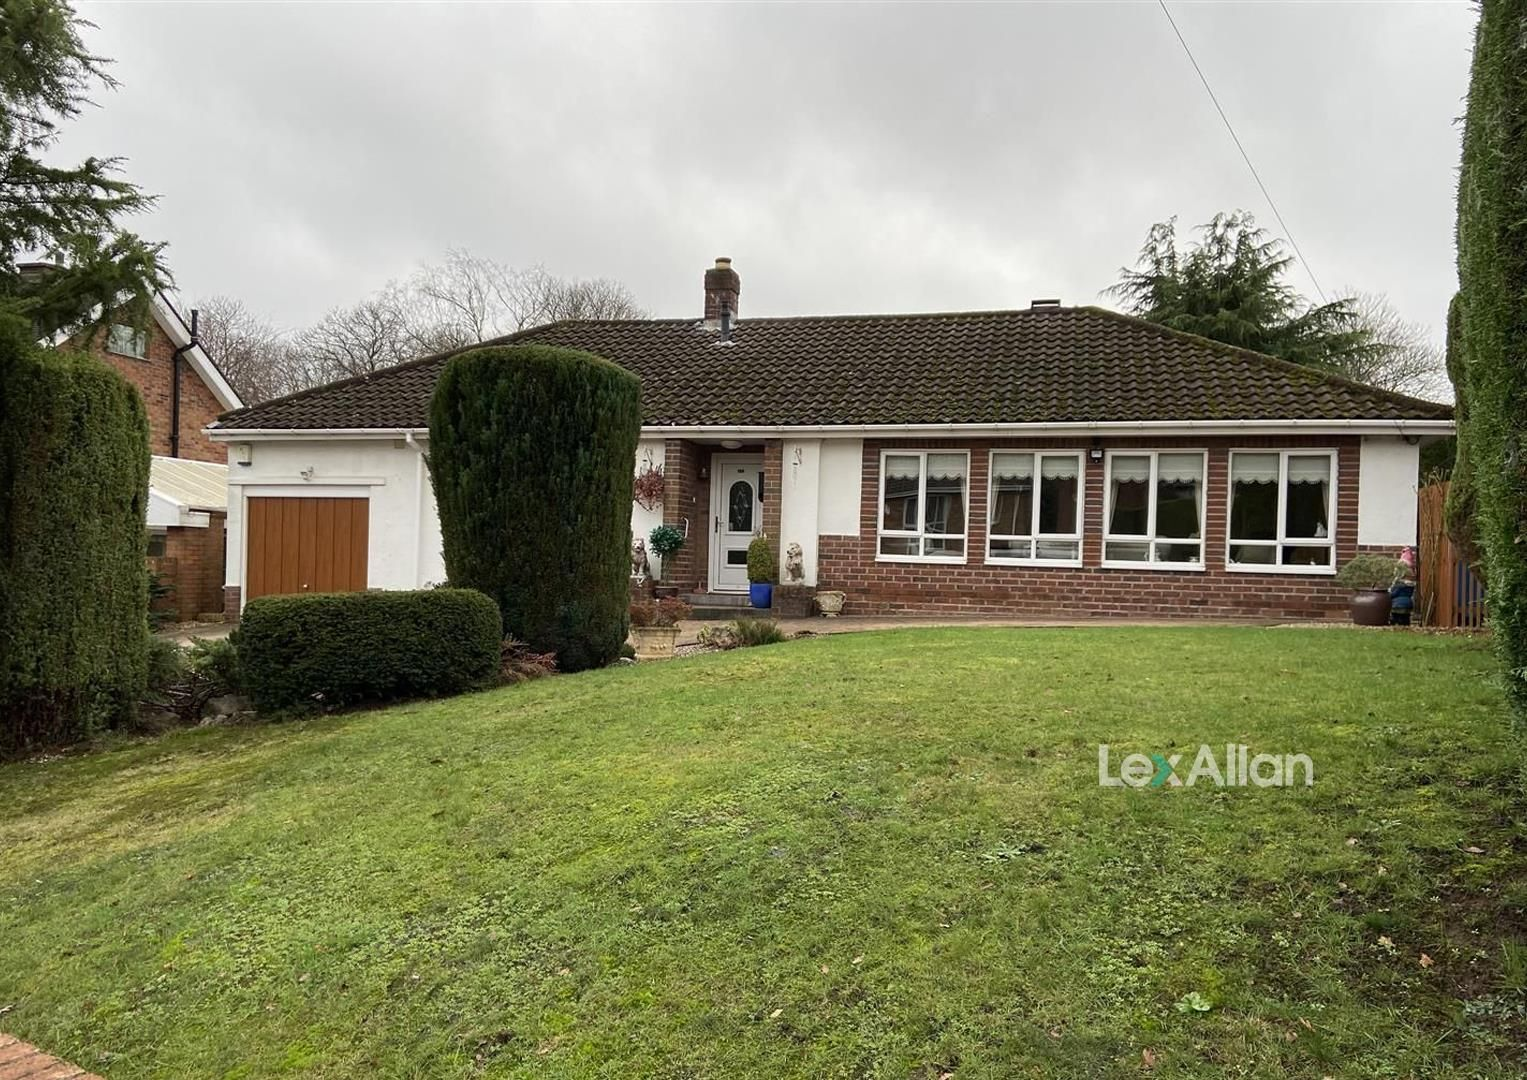 2 bed detached-bungalow for sale in Stourton, DY7